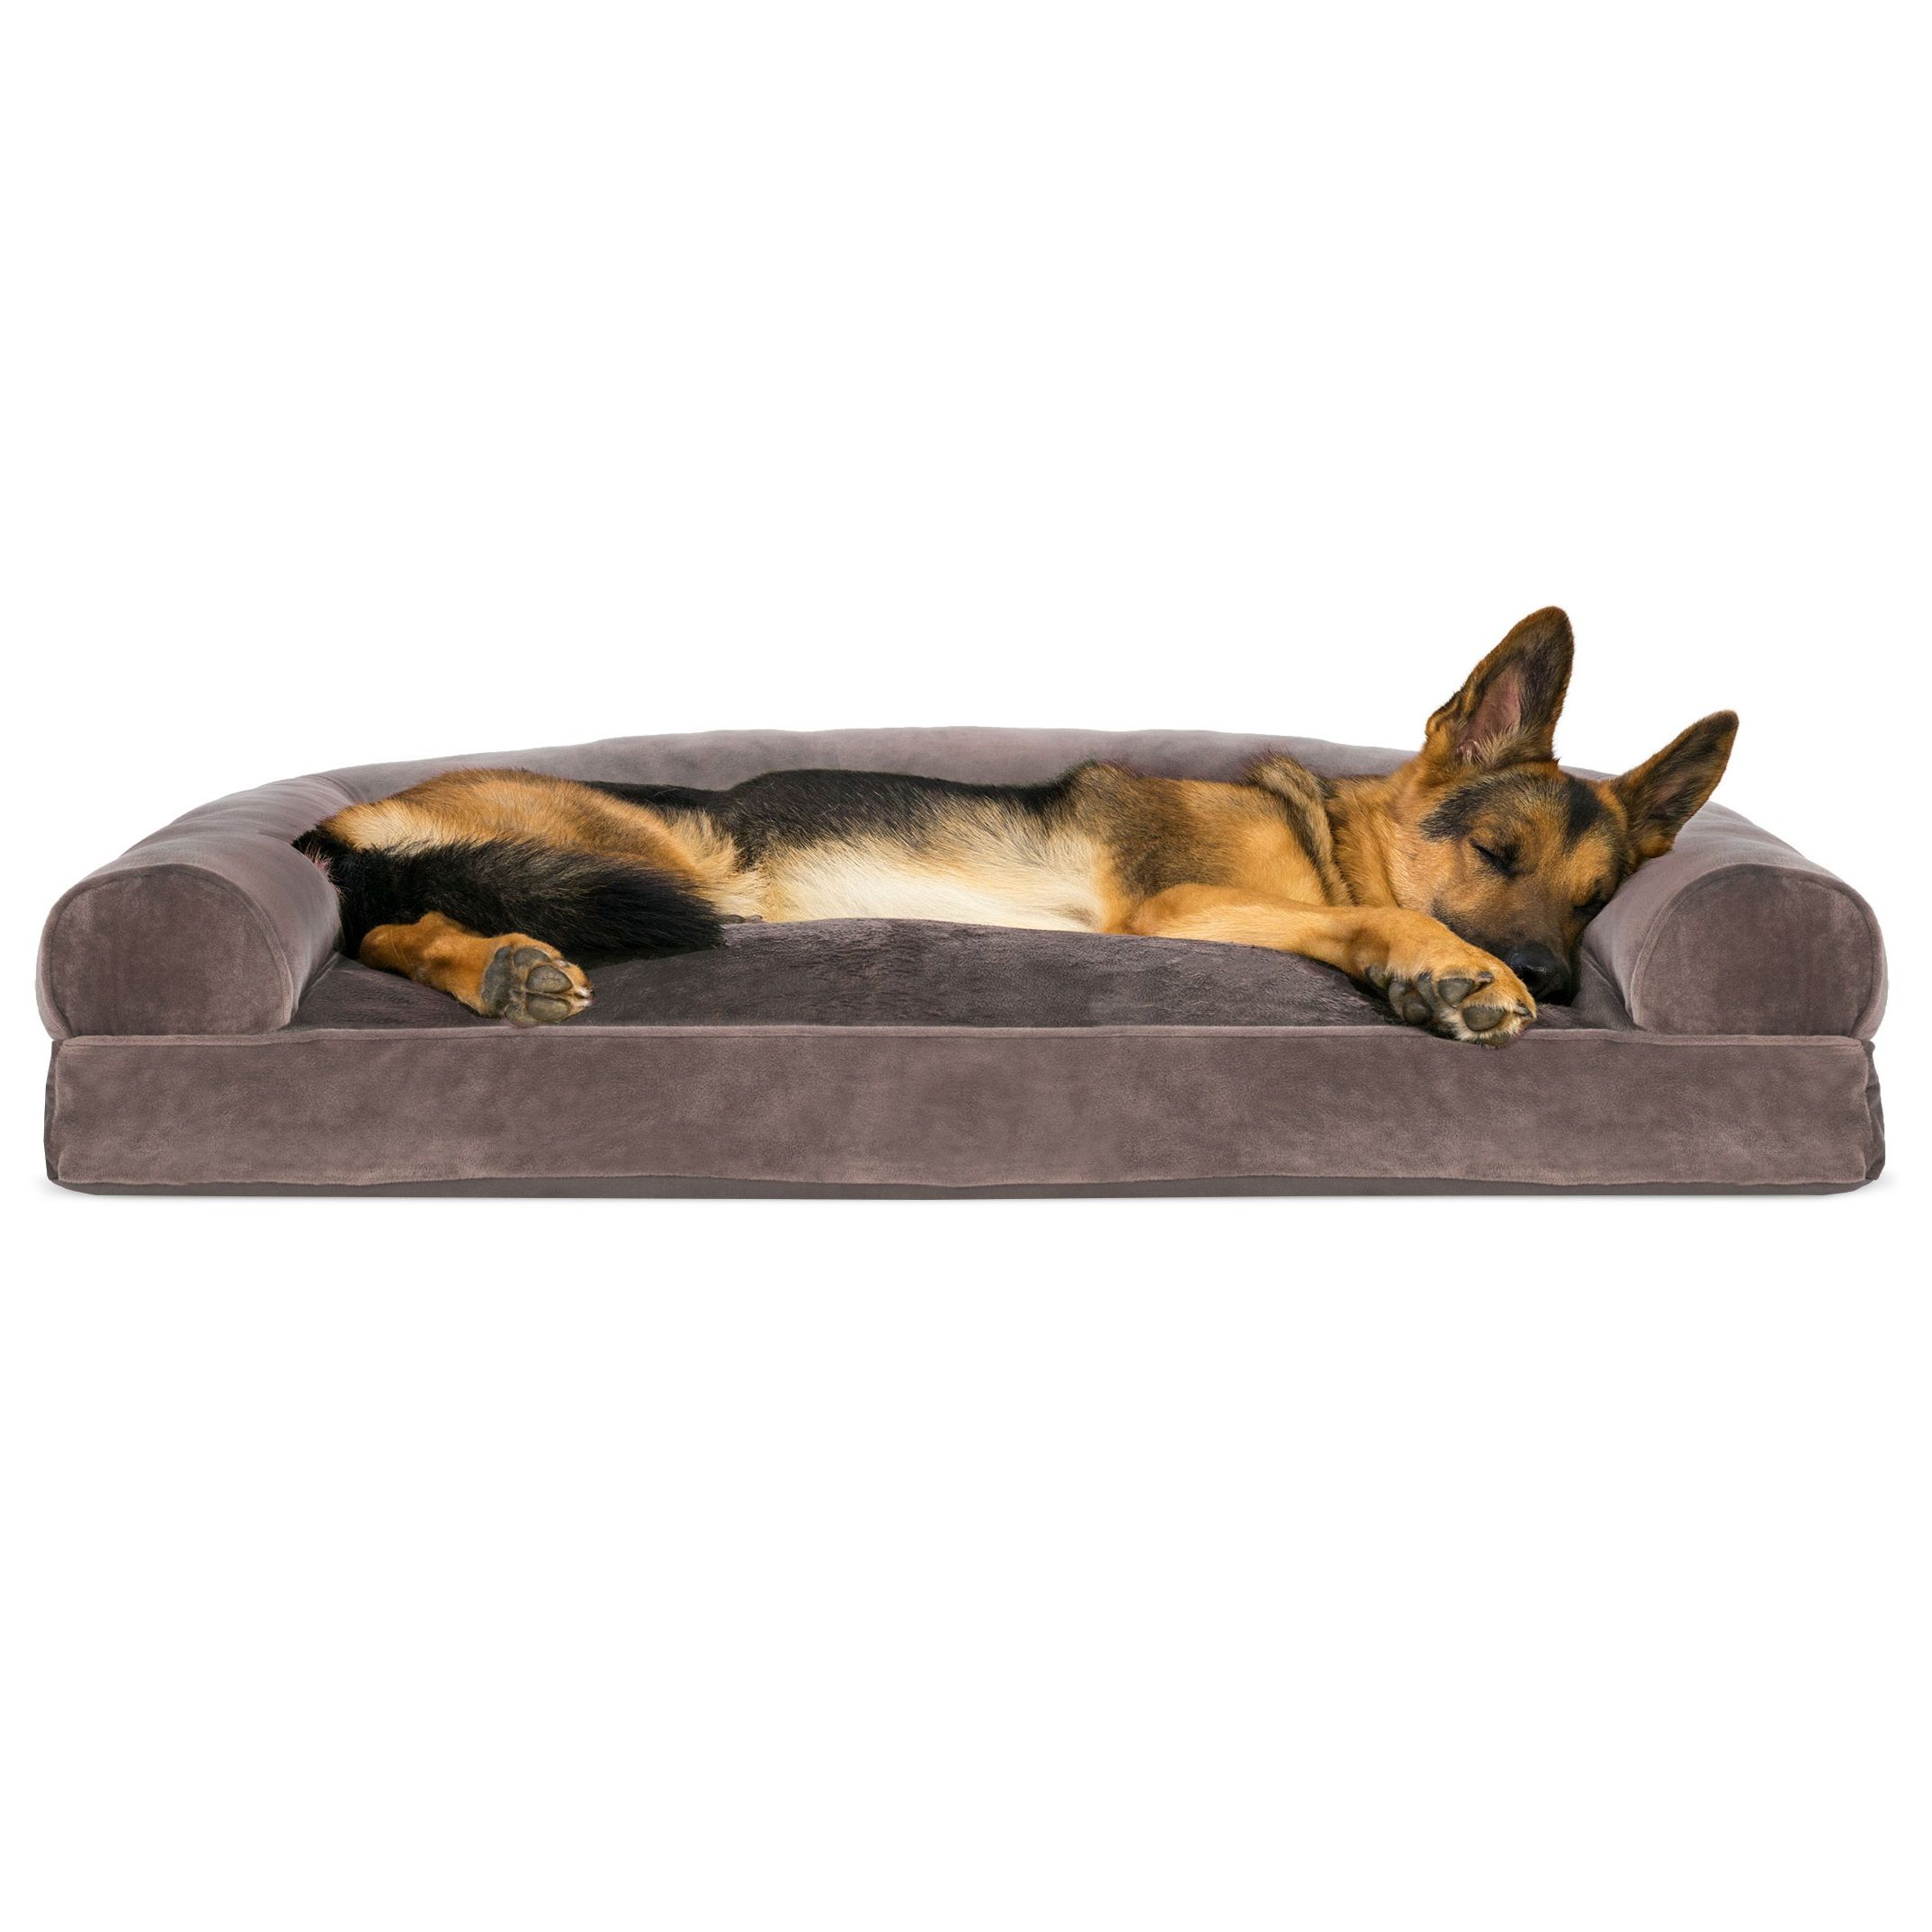 Furhaven Pet Dog Bed Faux Fur Velvet Pillow Sofa Style Couch Pet Bed For Dogs Cats Driftwood Brown Jumbo Walmart Com Dog Pet Beds Couch Pet Bed Animal Pillows